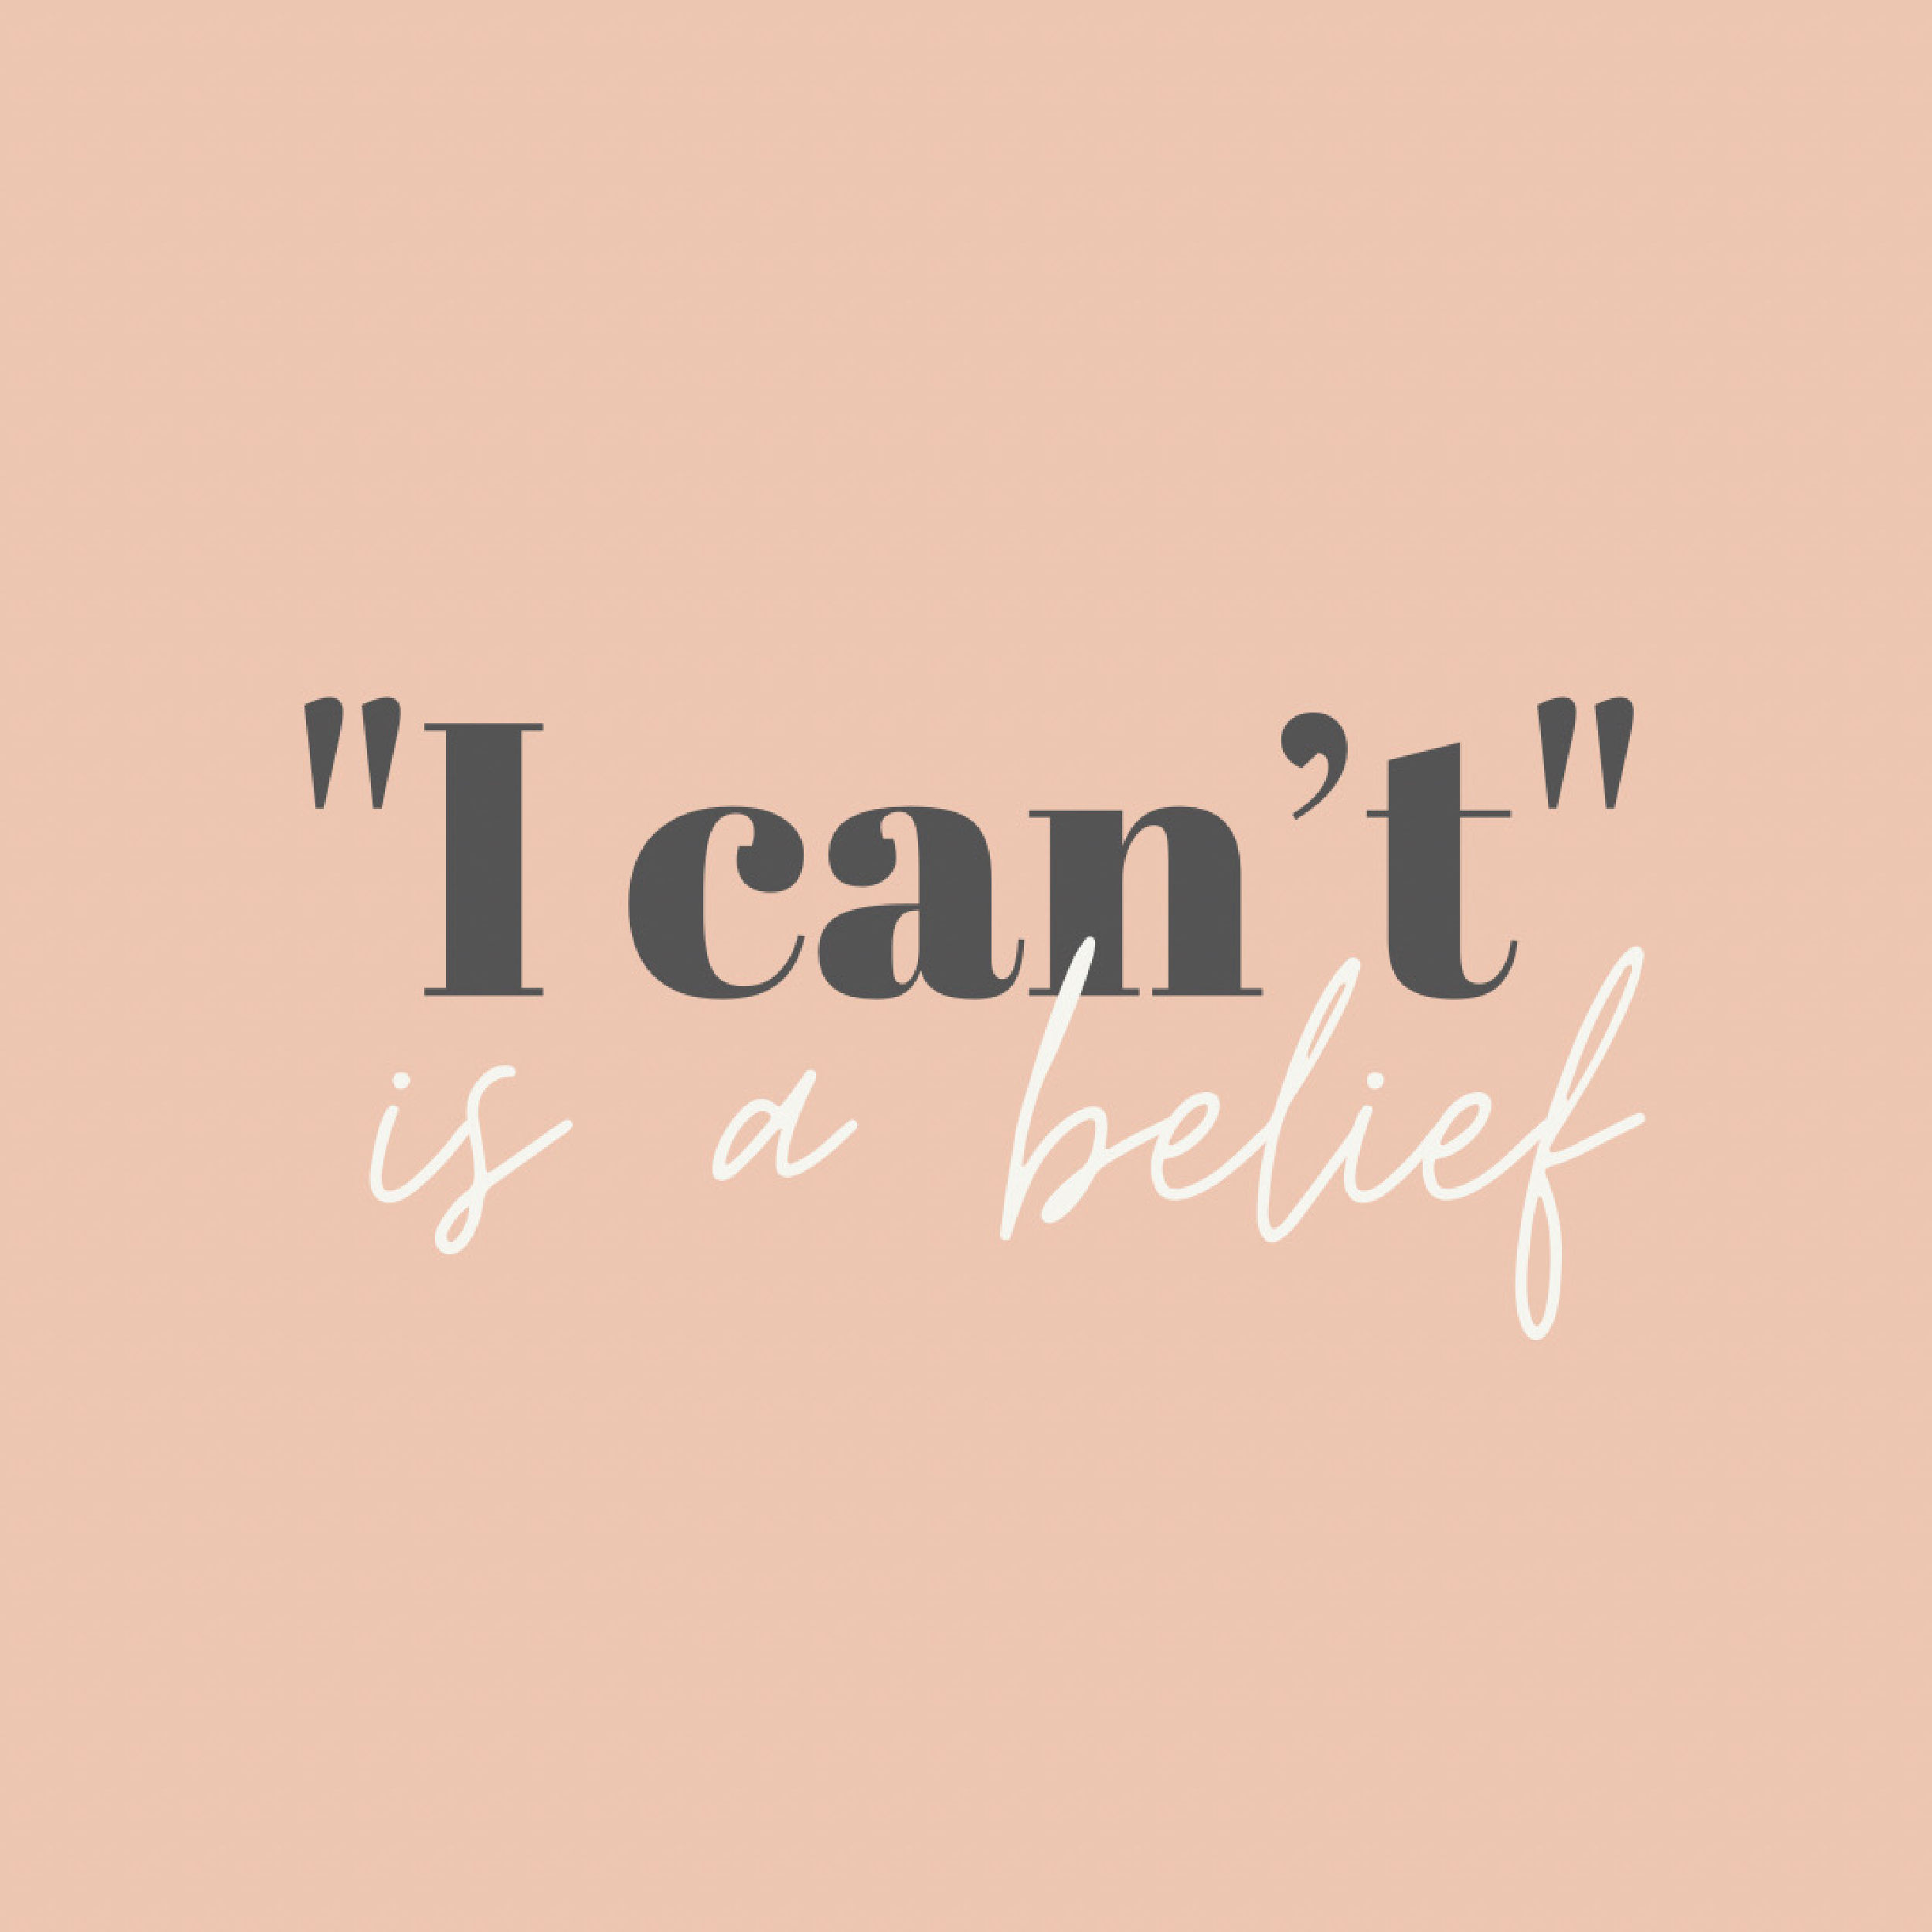 I can't is a belief